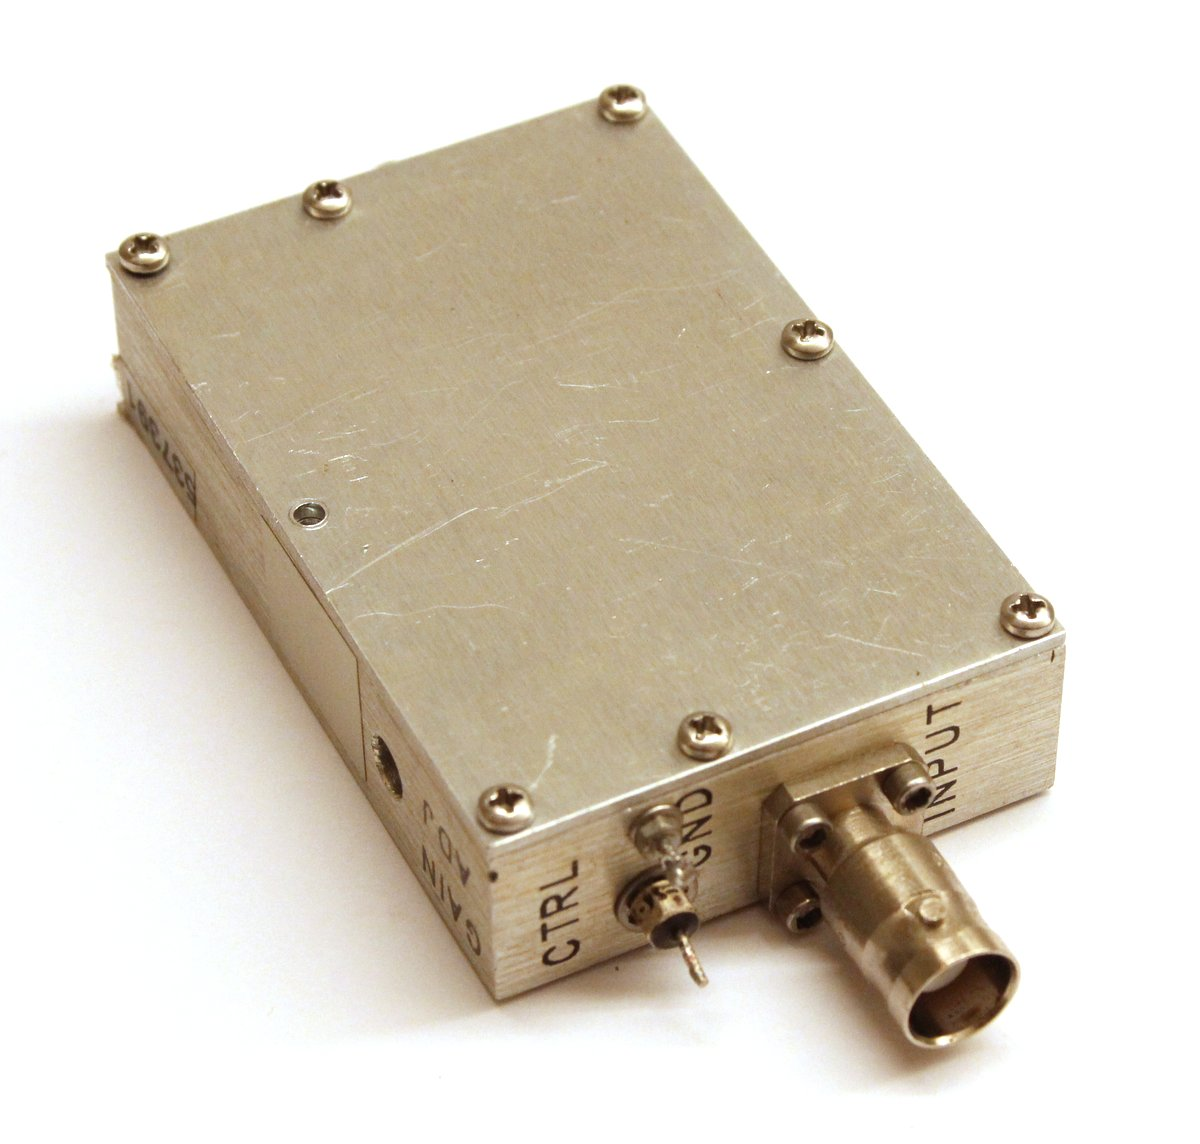 A High End Uhf Preamp For The Vhf Uhf Dongle